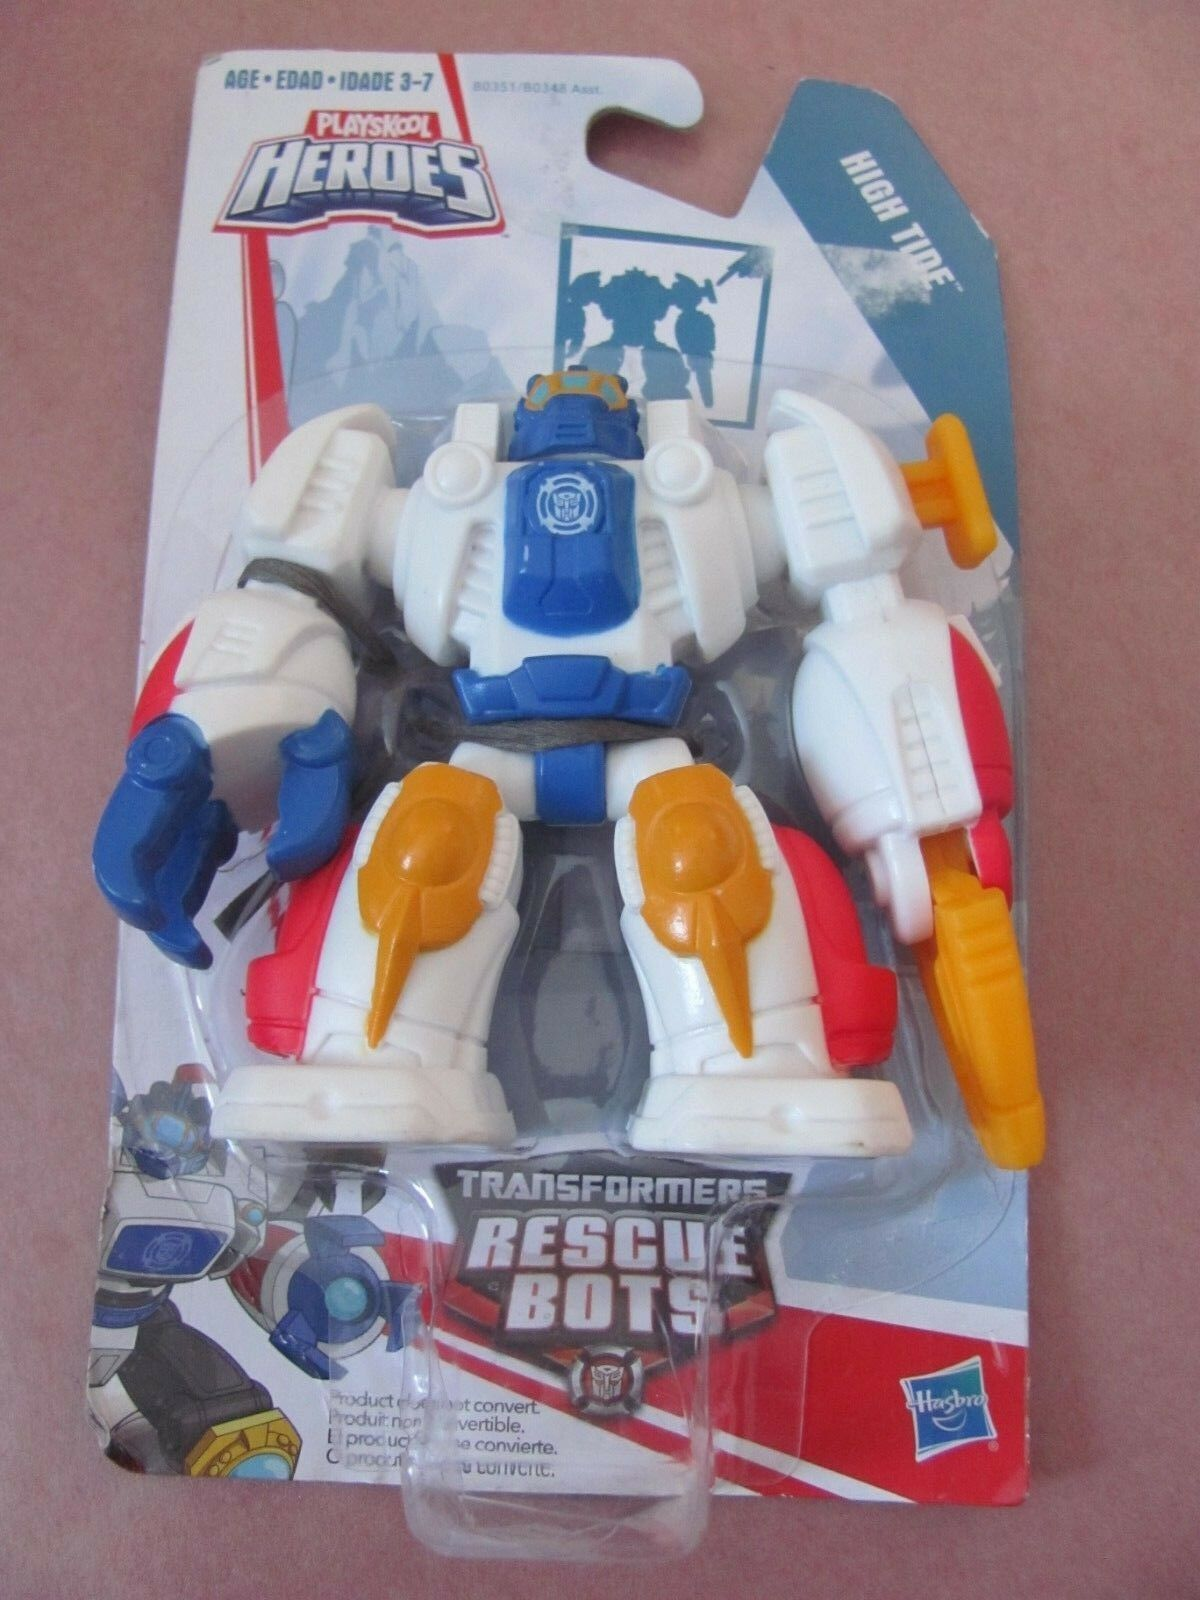 Transformers Rescue Bots High Tide 3   Playskool Heroes Nuovo Doesn'T Transform